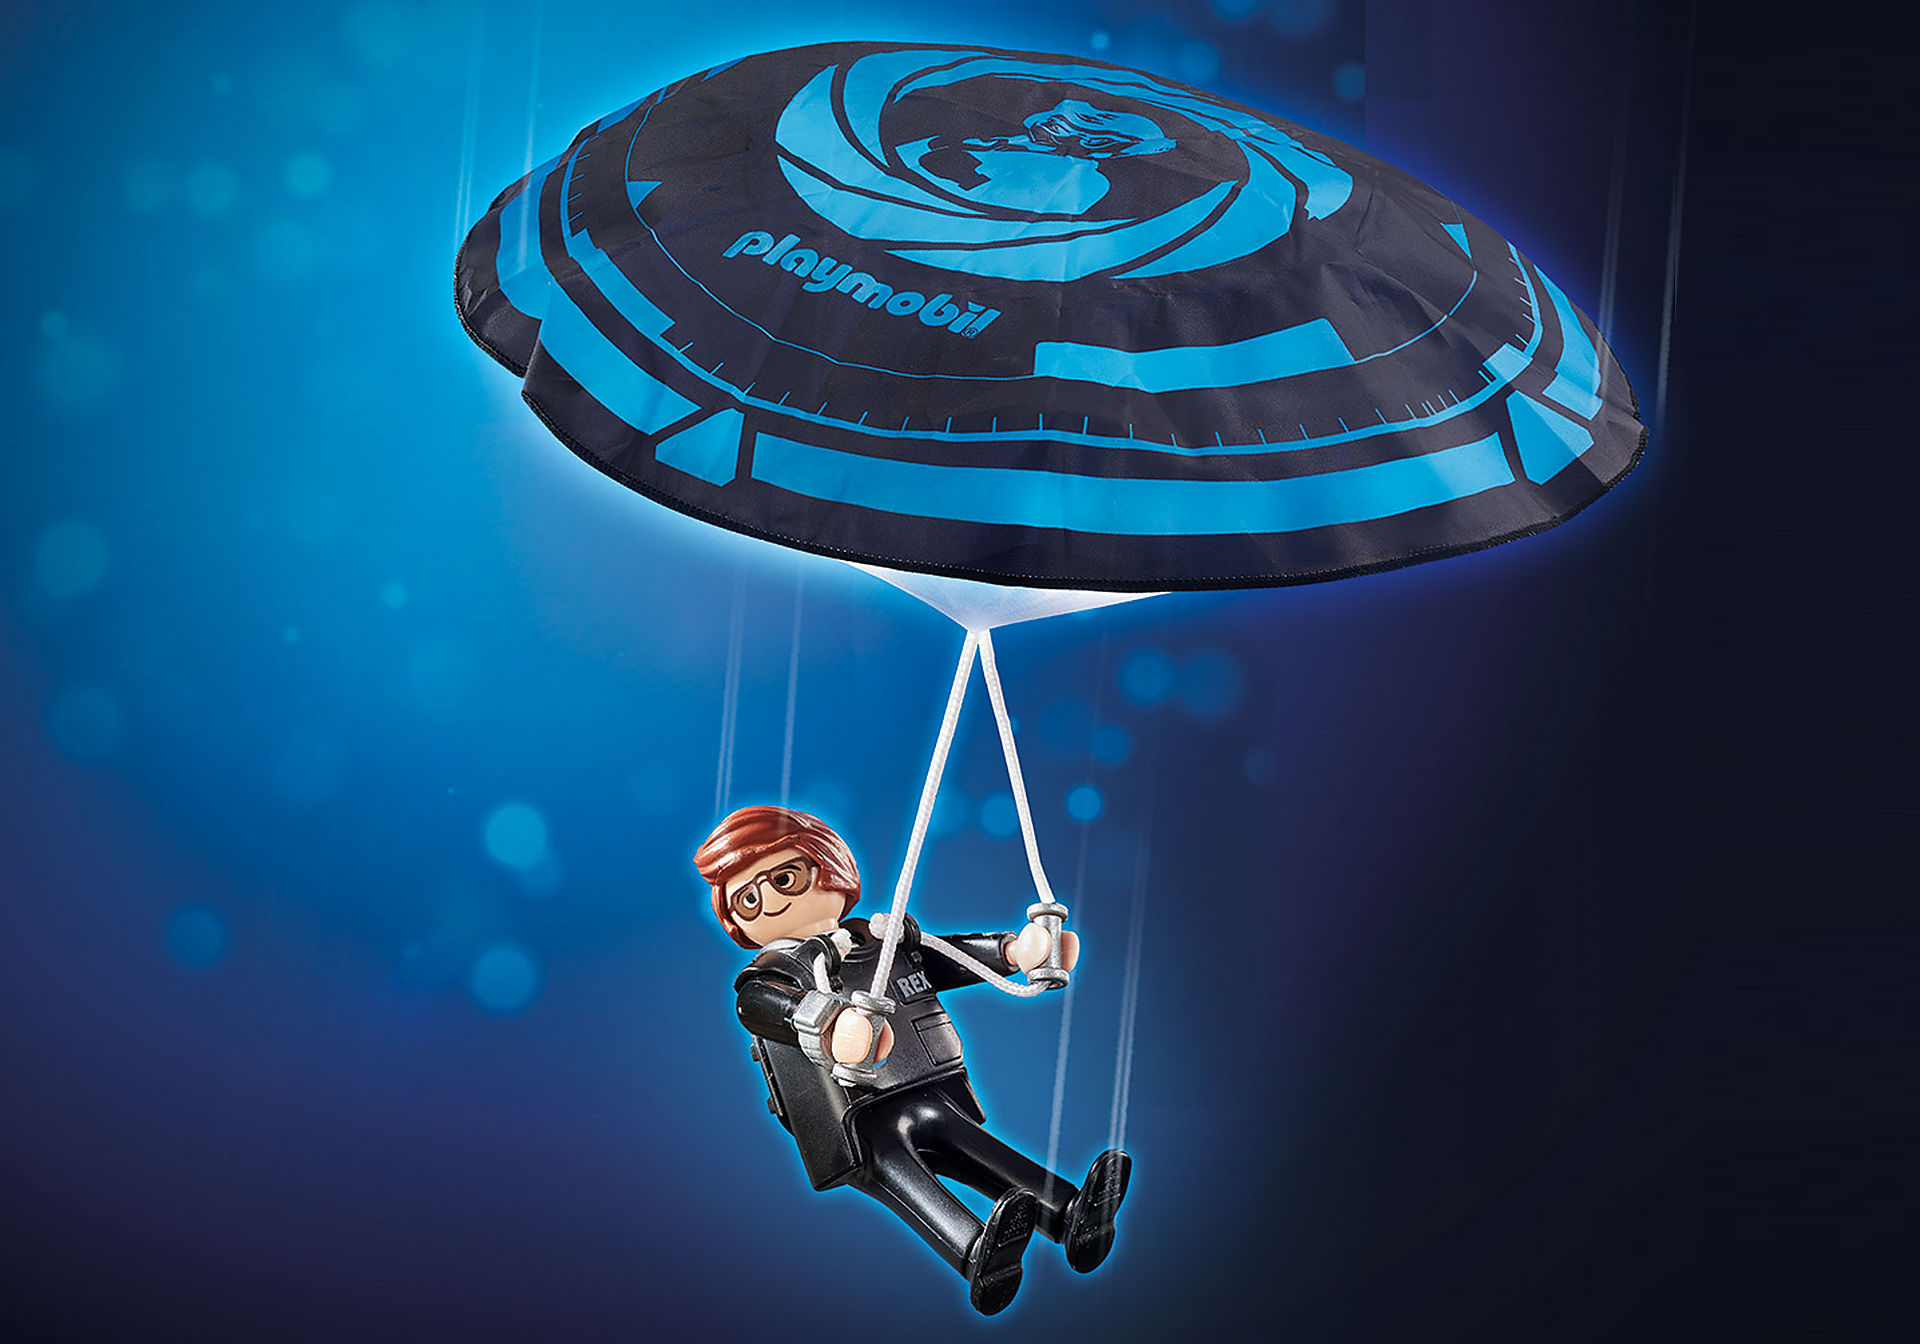 70070 PLAYMOBIL:THE MOVIE Rex Dasher with Parachute zoom image1